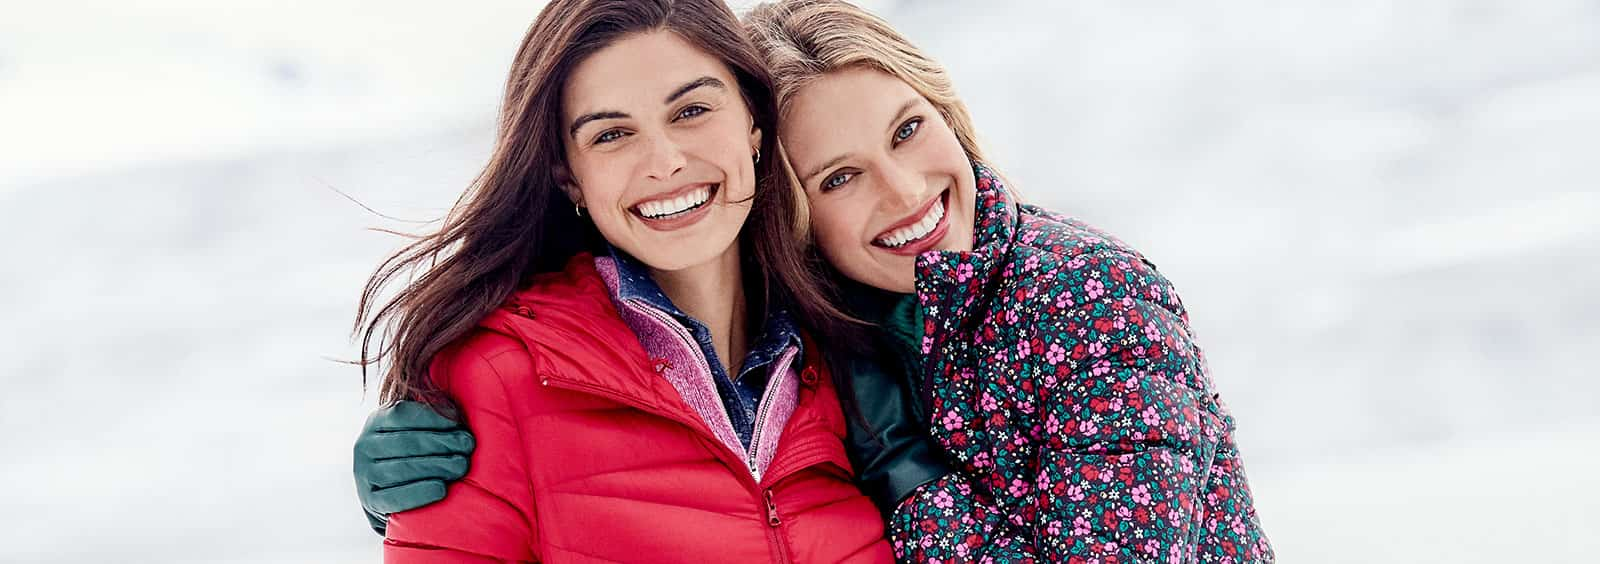 Best Winter Coats for Busy Moms